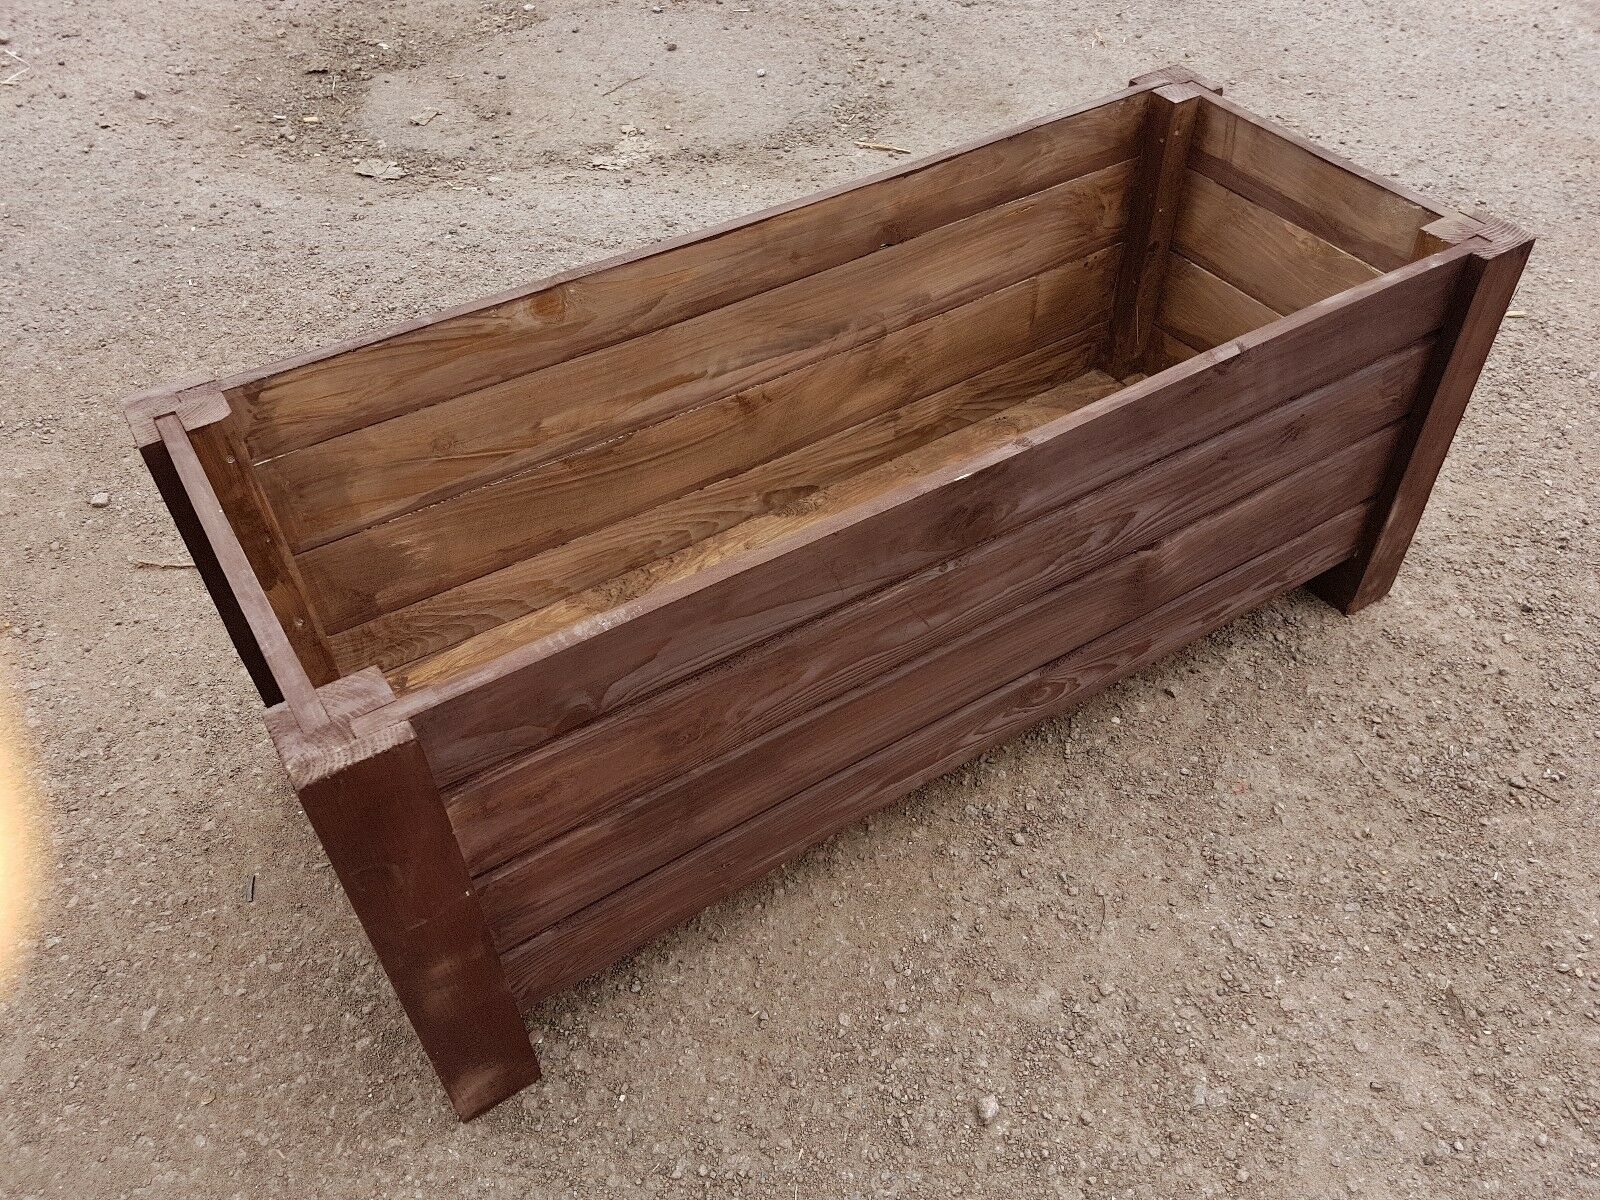 Very Big Wooden Pot 100 cm Long of Solid Wood Spruce in Ebony Farbe